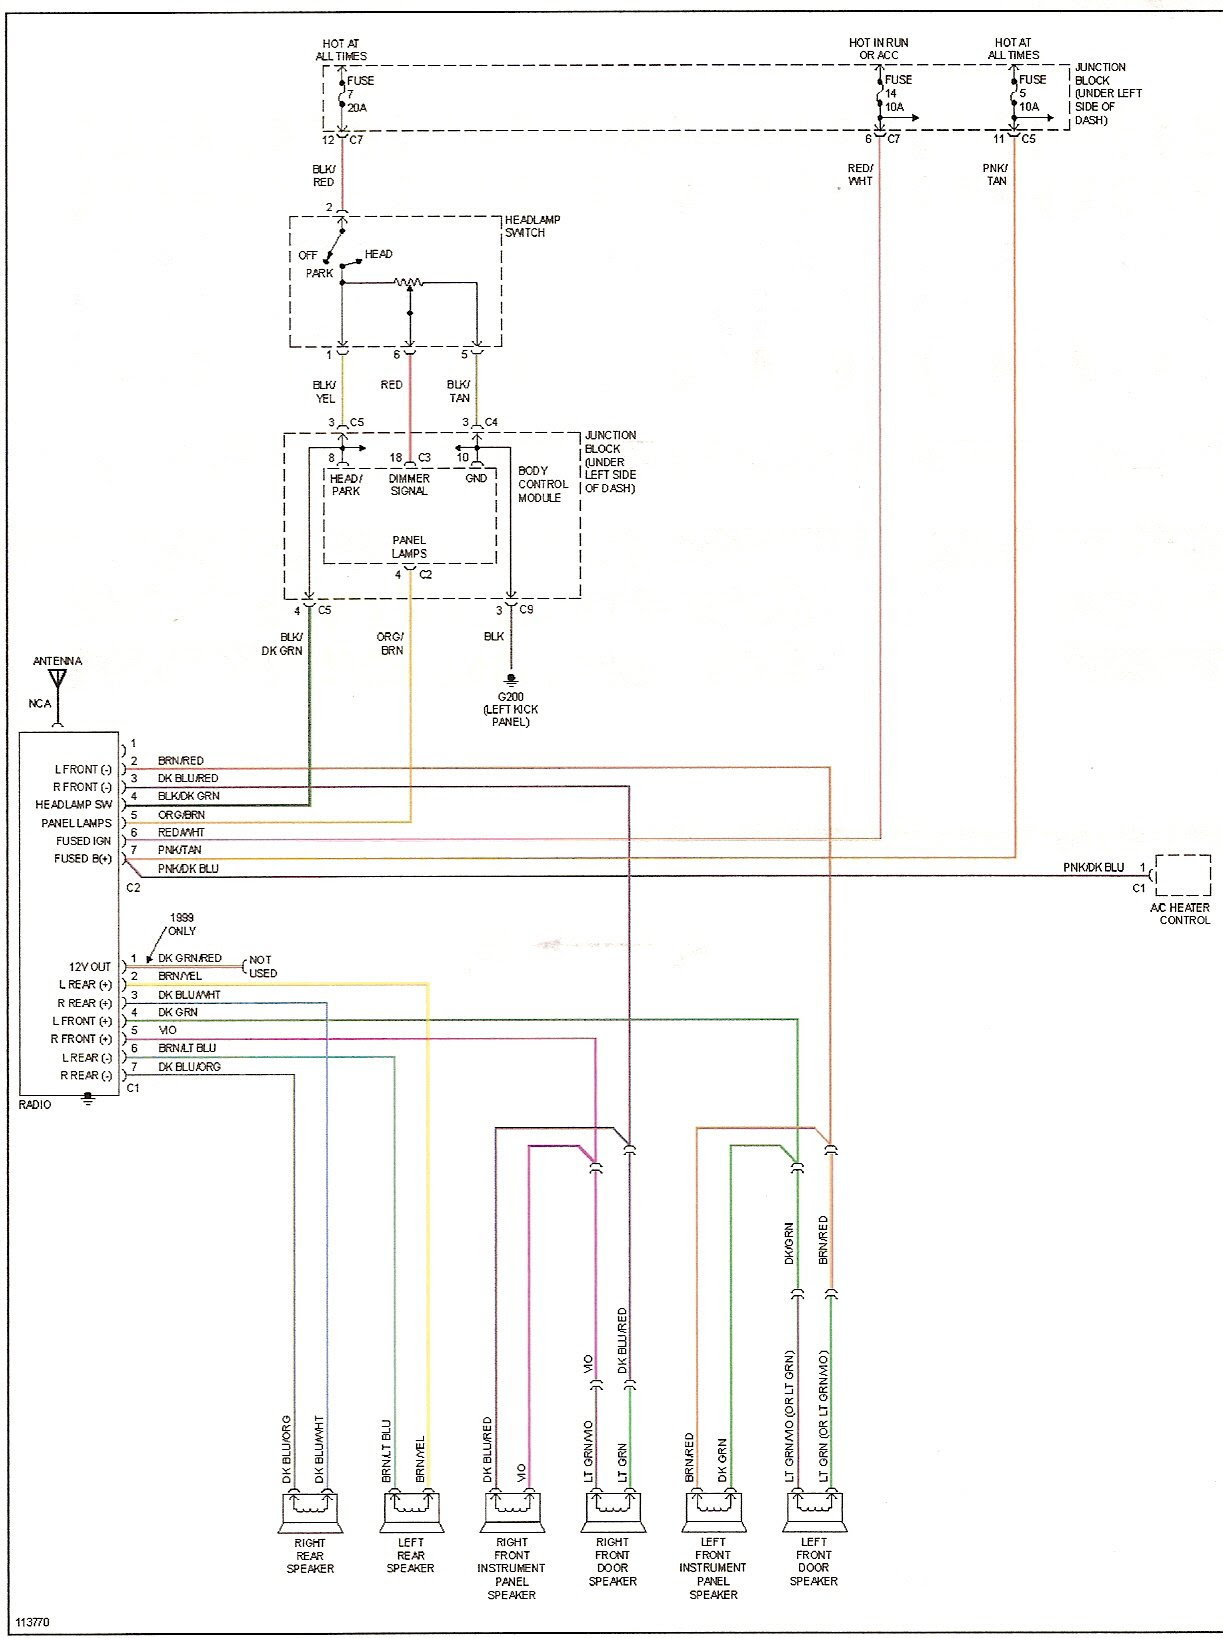 Diagram 1947 Plymouth Wiring Diagram Schematic 8 Mb New Update December 19 2020 Full Version Hd Quality Diagram Schematic Actionengine Stampashopperferrara It